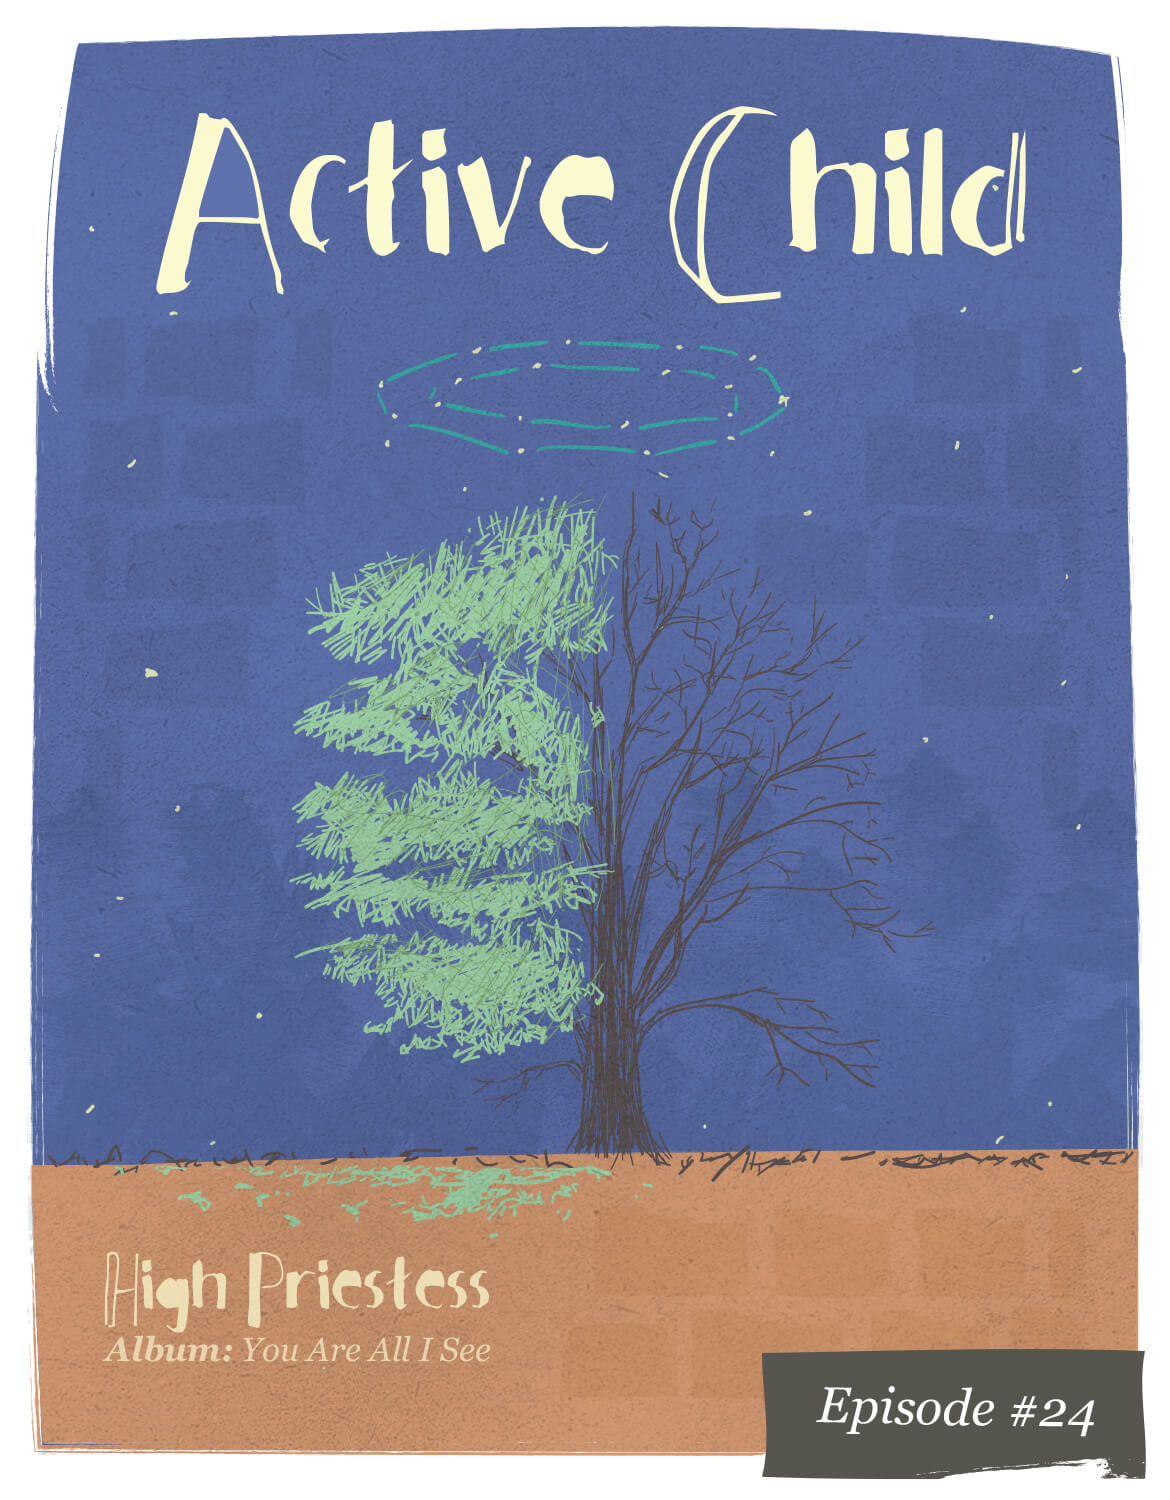 activechild_postcard